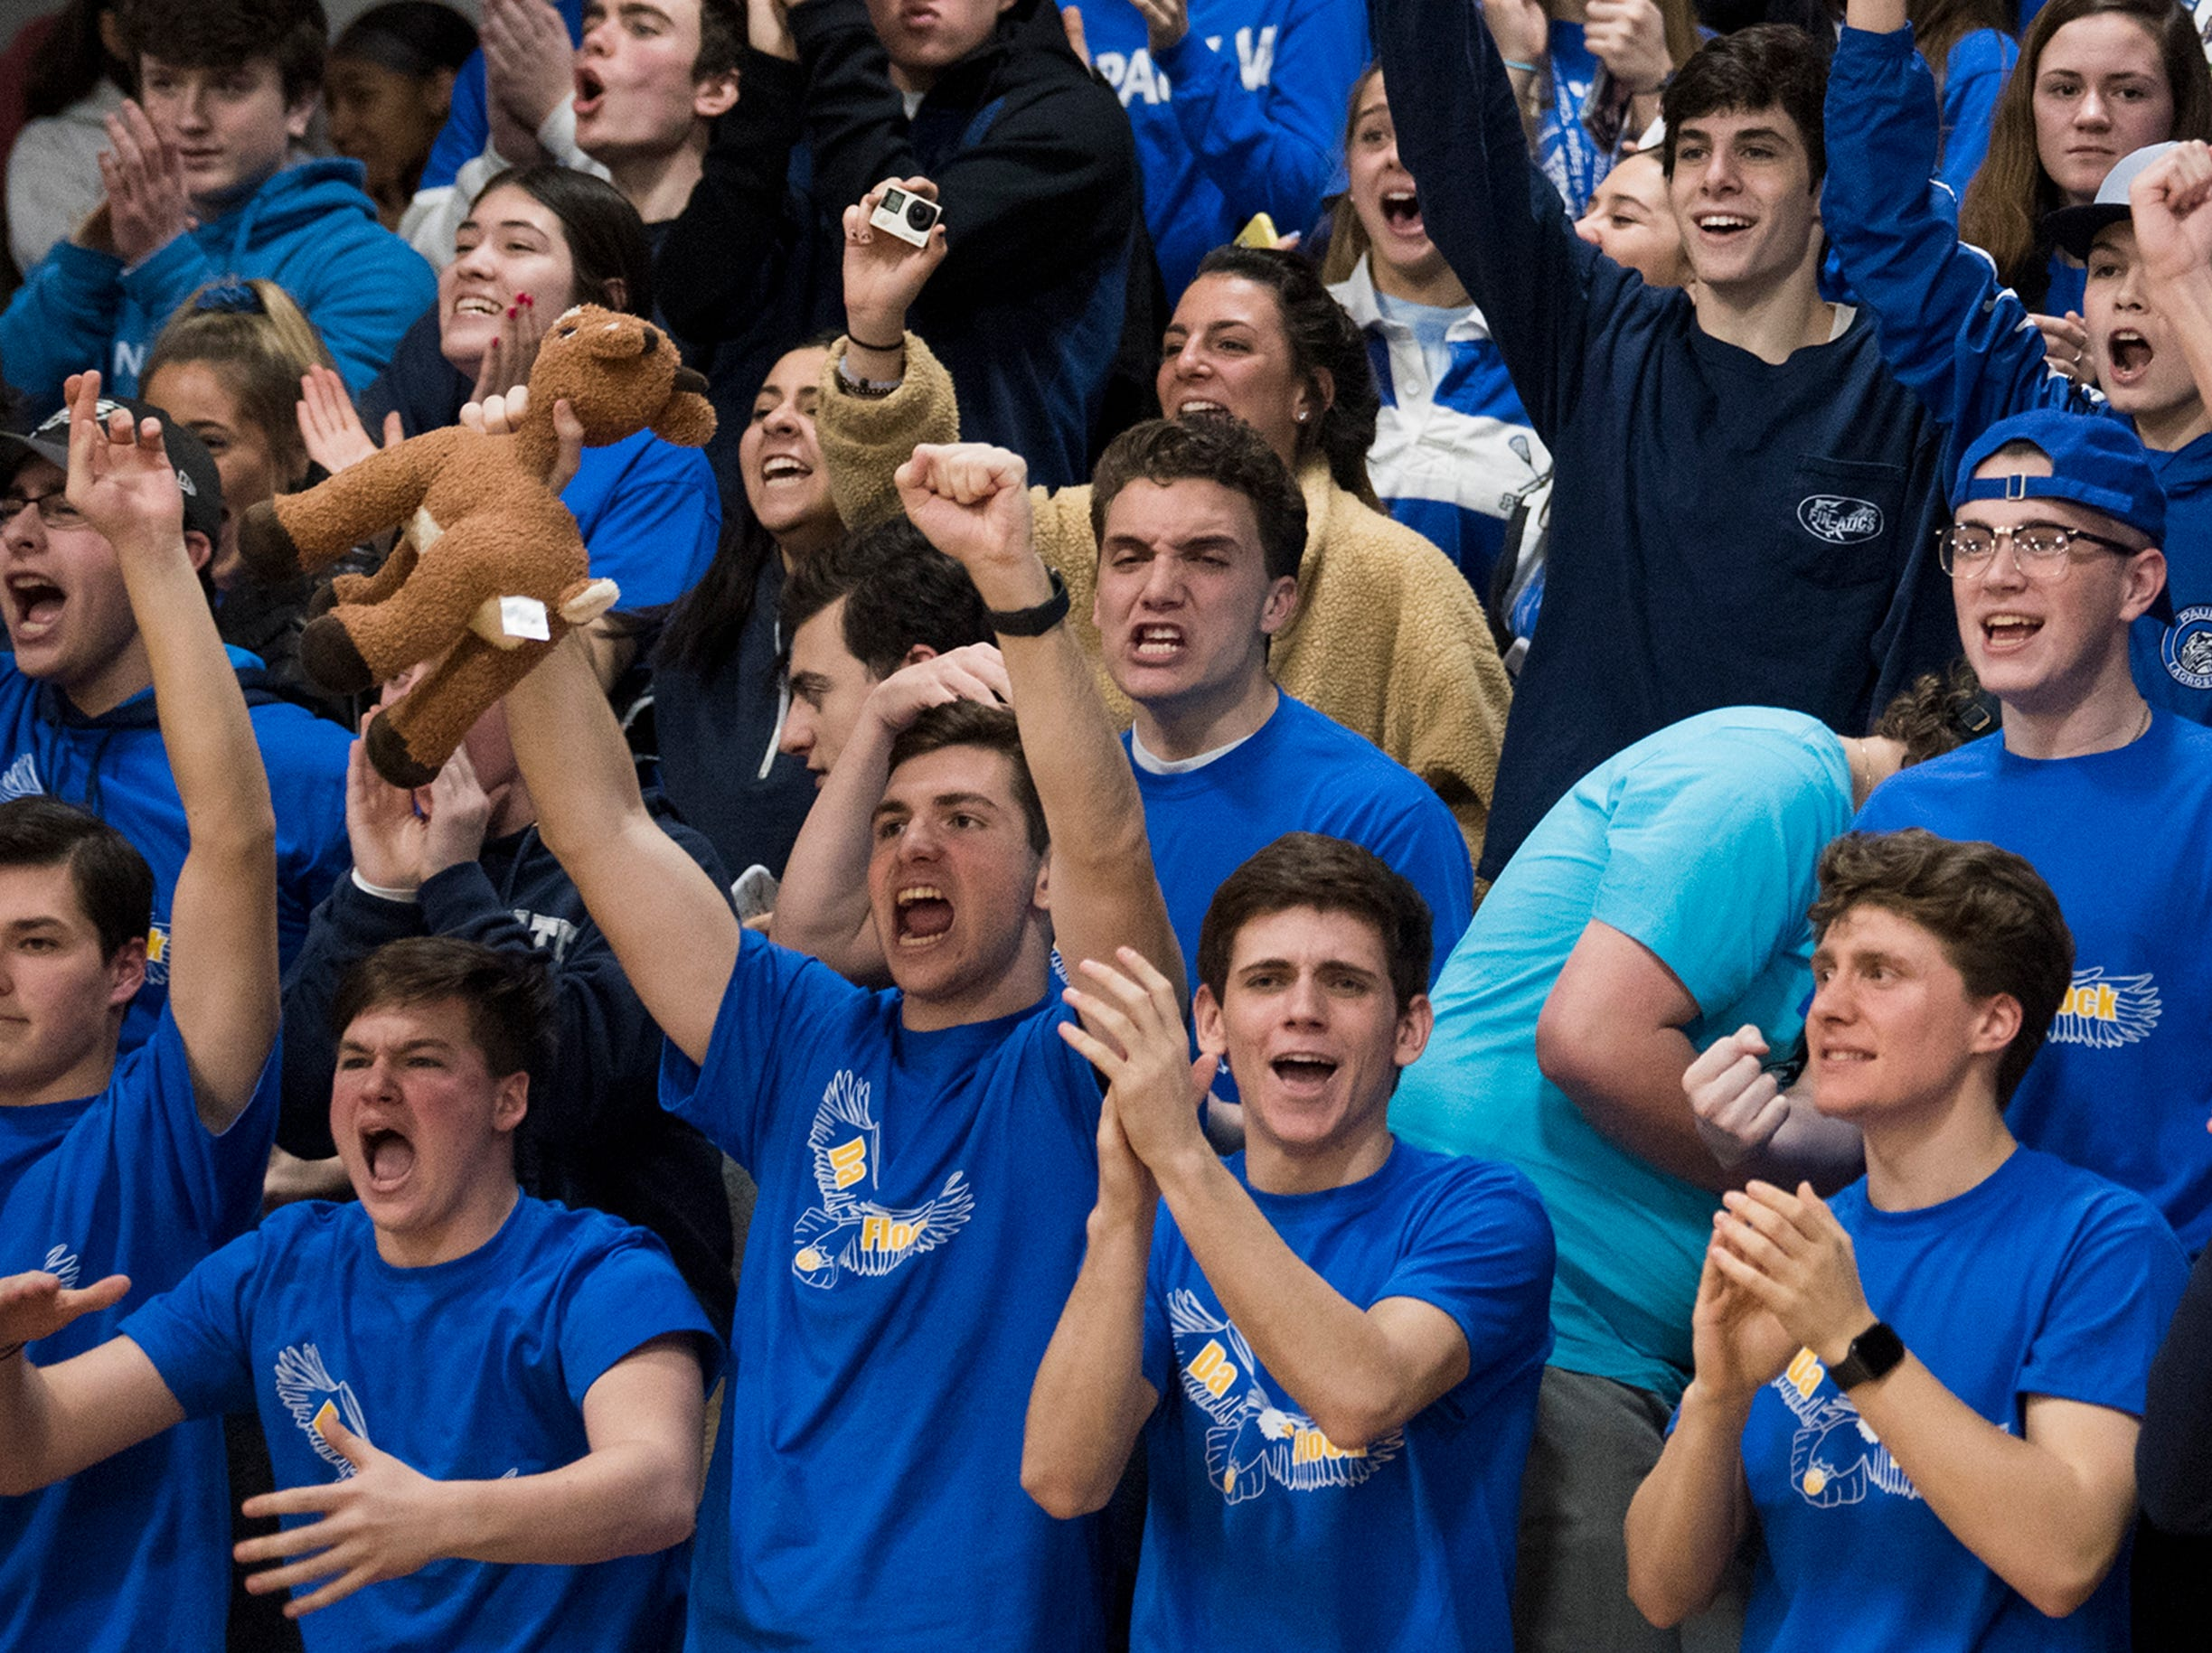 Paul VI fans cheer after a 45-43 win over Cherokee Tuesday, Feb. 12, 2019 in Haddonfield, N.J.